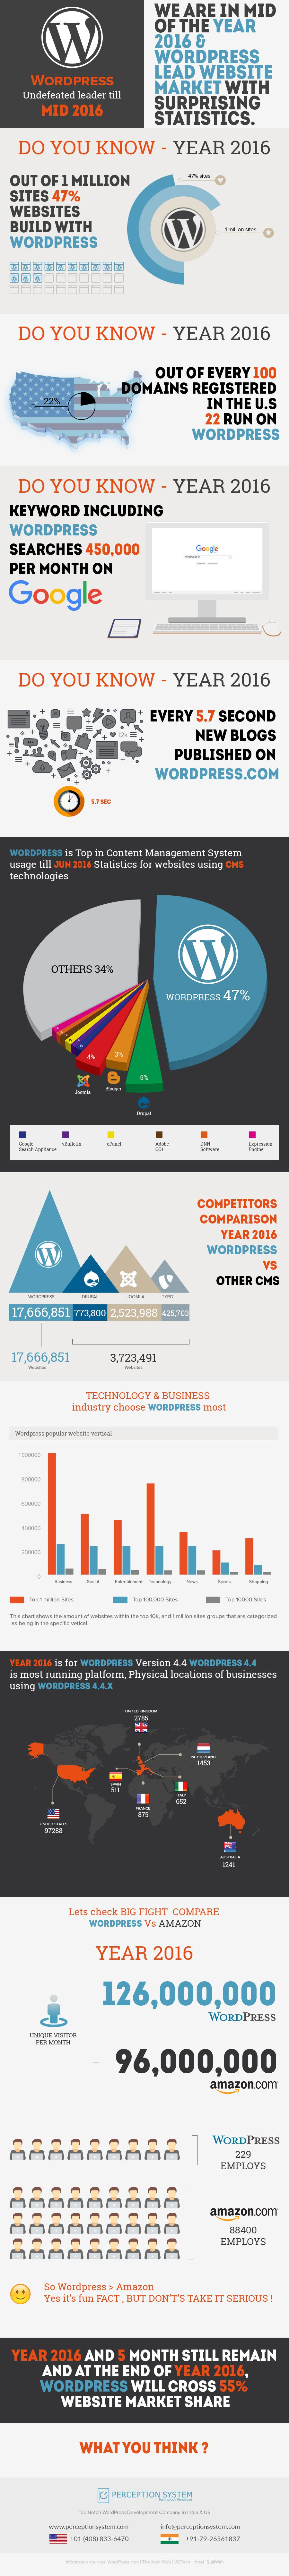 Popularity of Wordpress CMS in 2016 with Surprising Statistics #Infographic